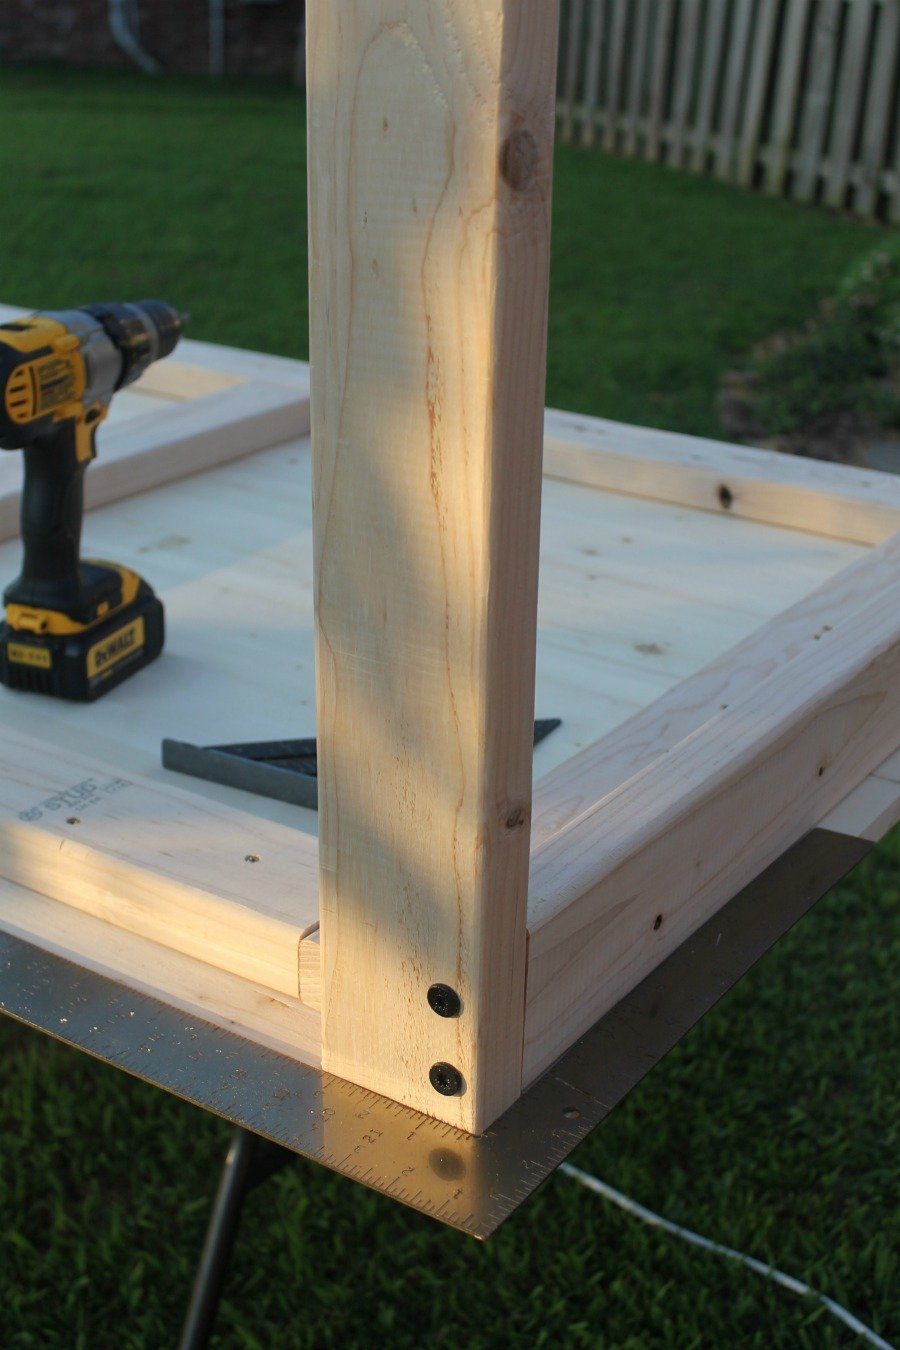 "4 1/2"" HeadLOK screws to attach the leg pieces to the short end - DIY farmhouse table"